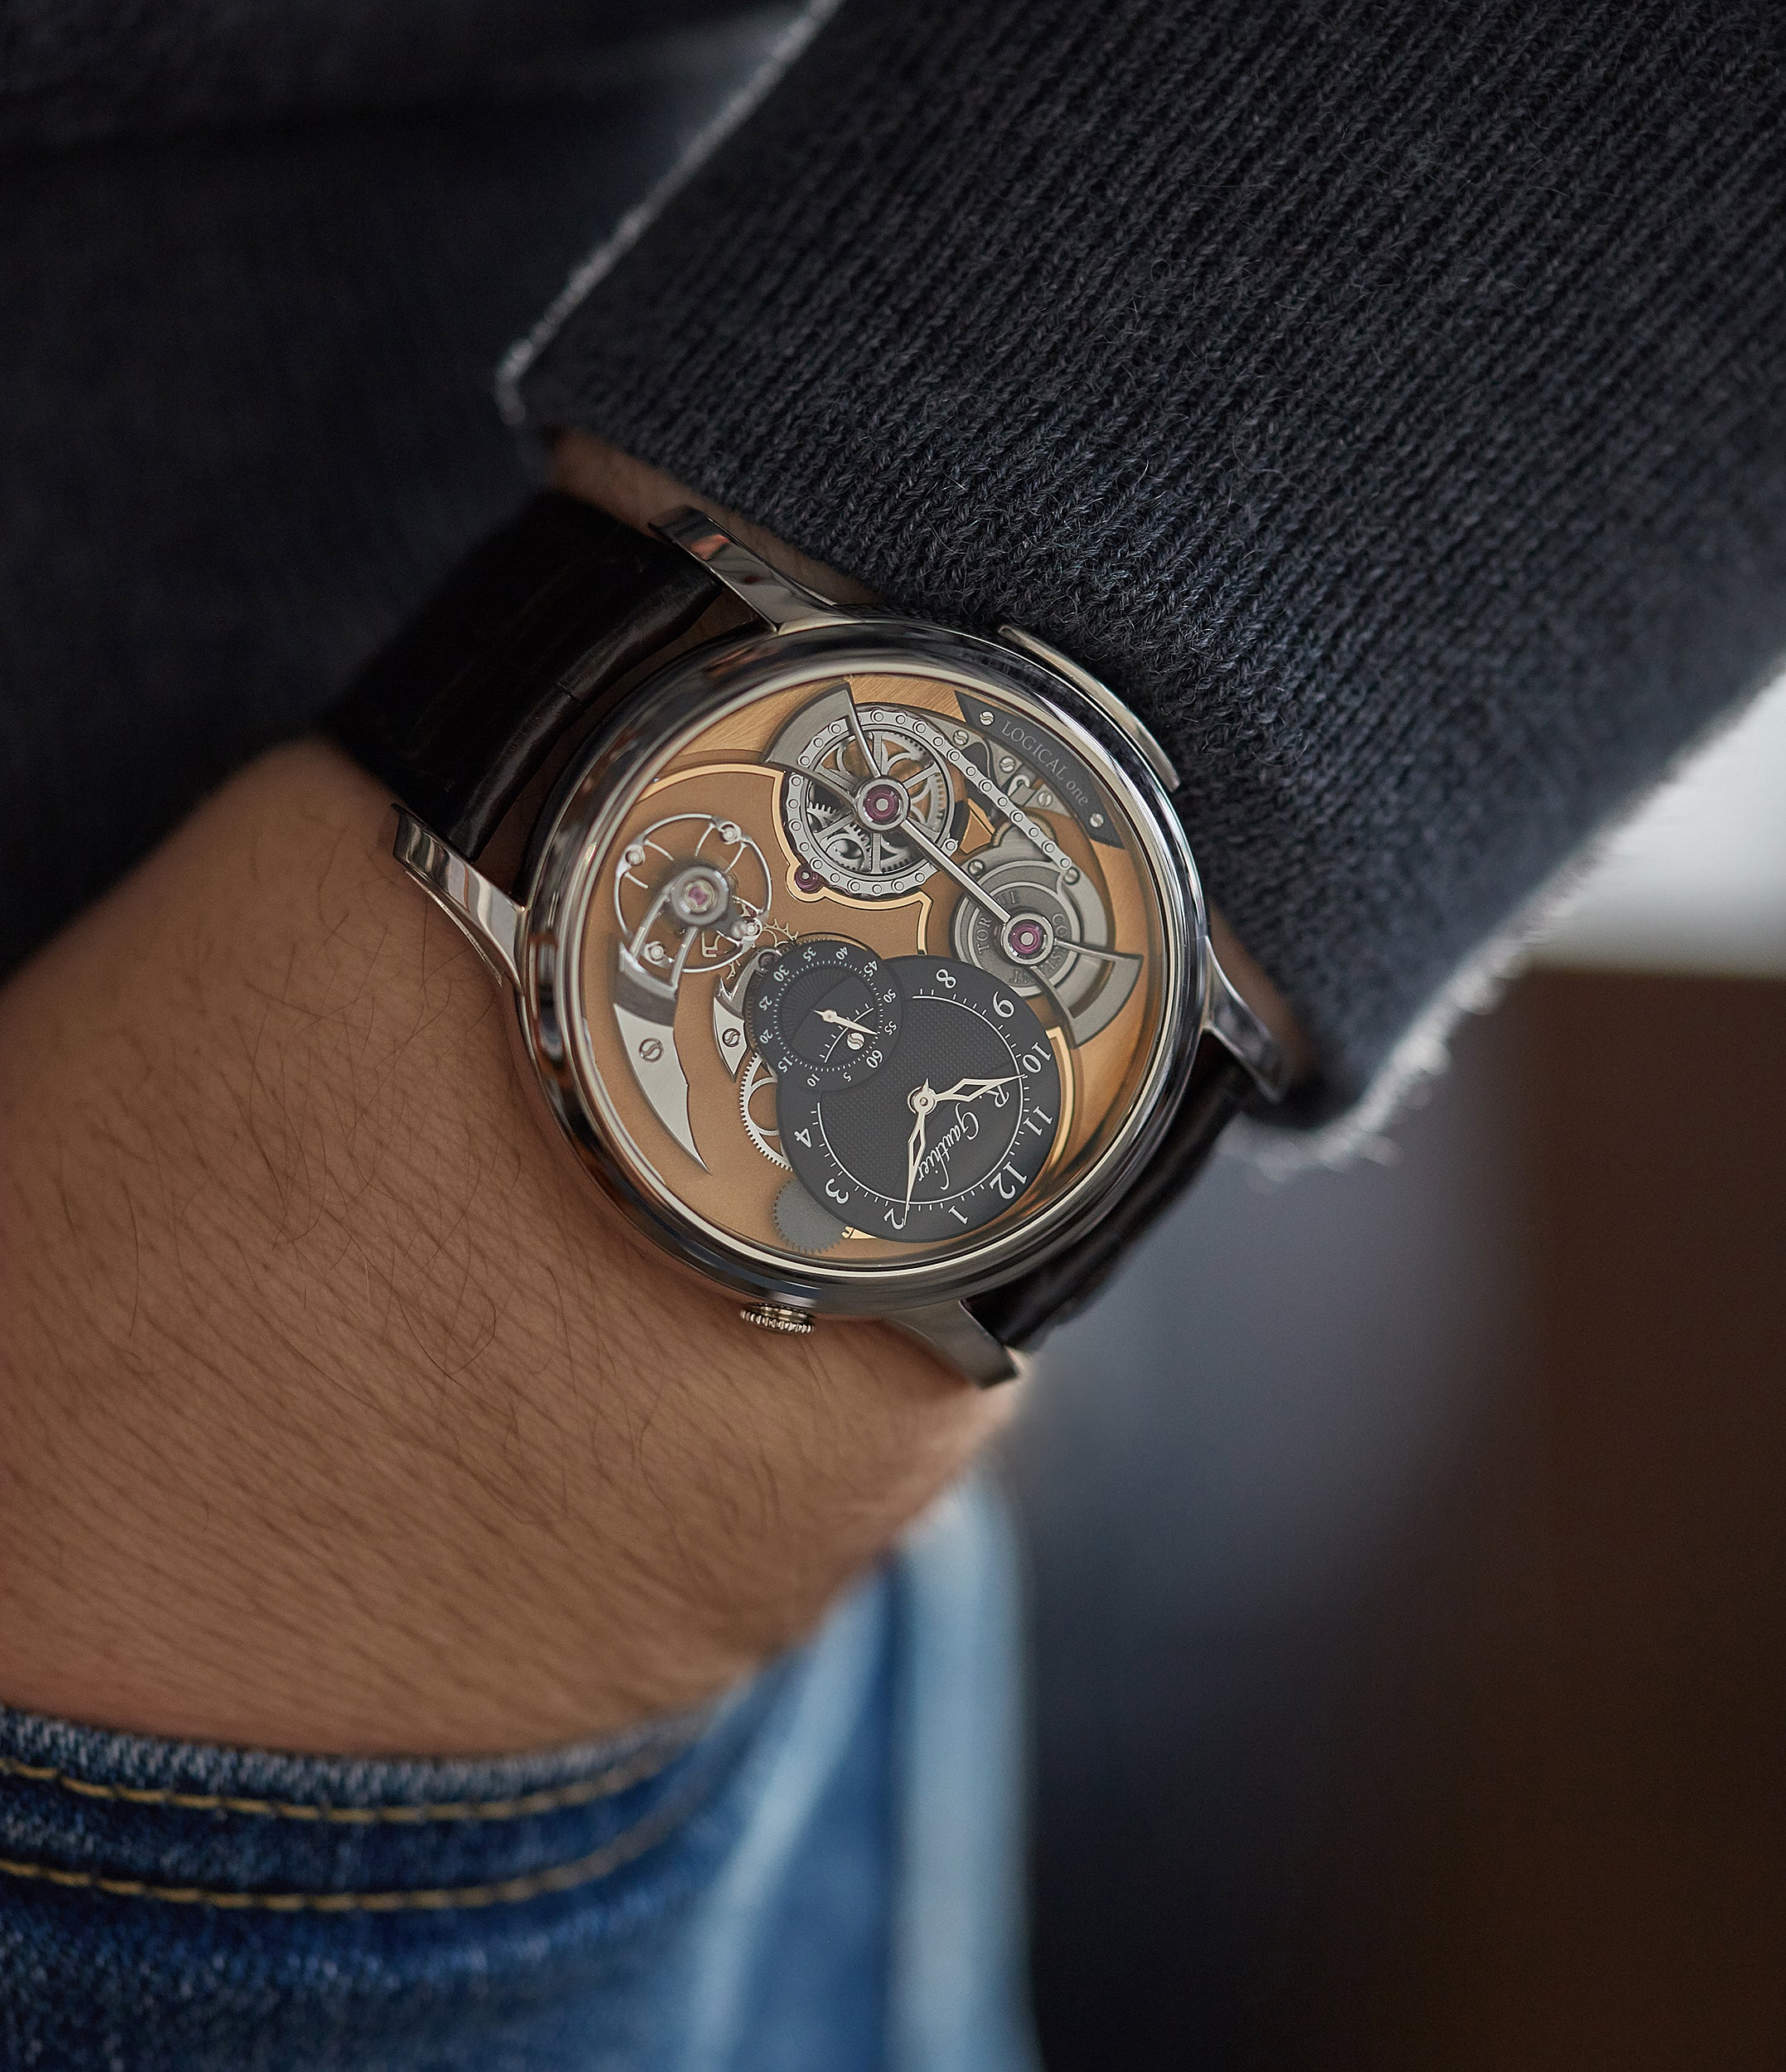 Logical One Romain Gauthier white gold skeletonised watch for sale online at A Collected Man London UK specialist of independent watchmakers